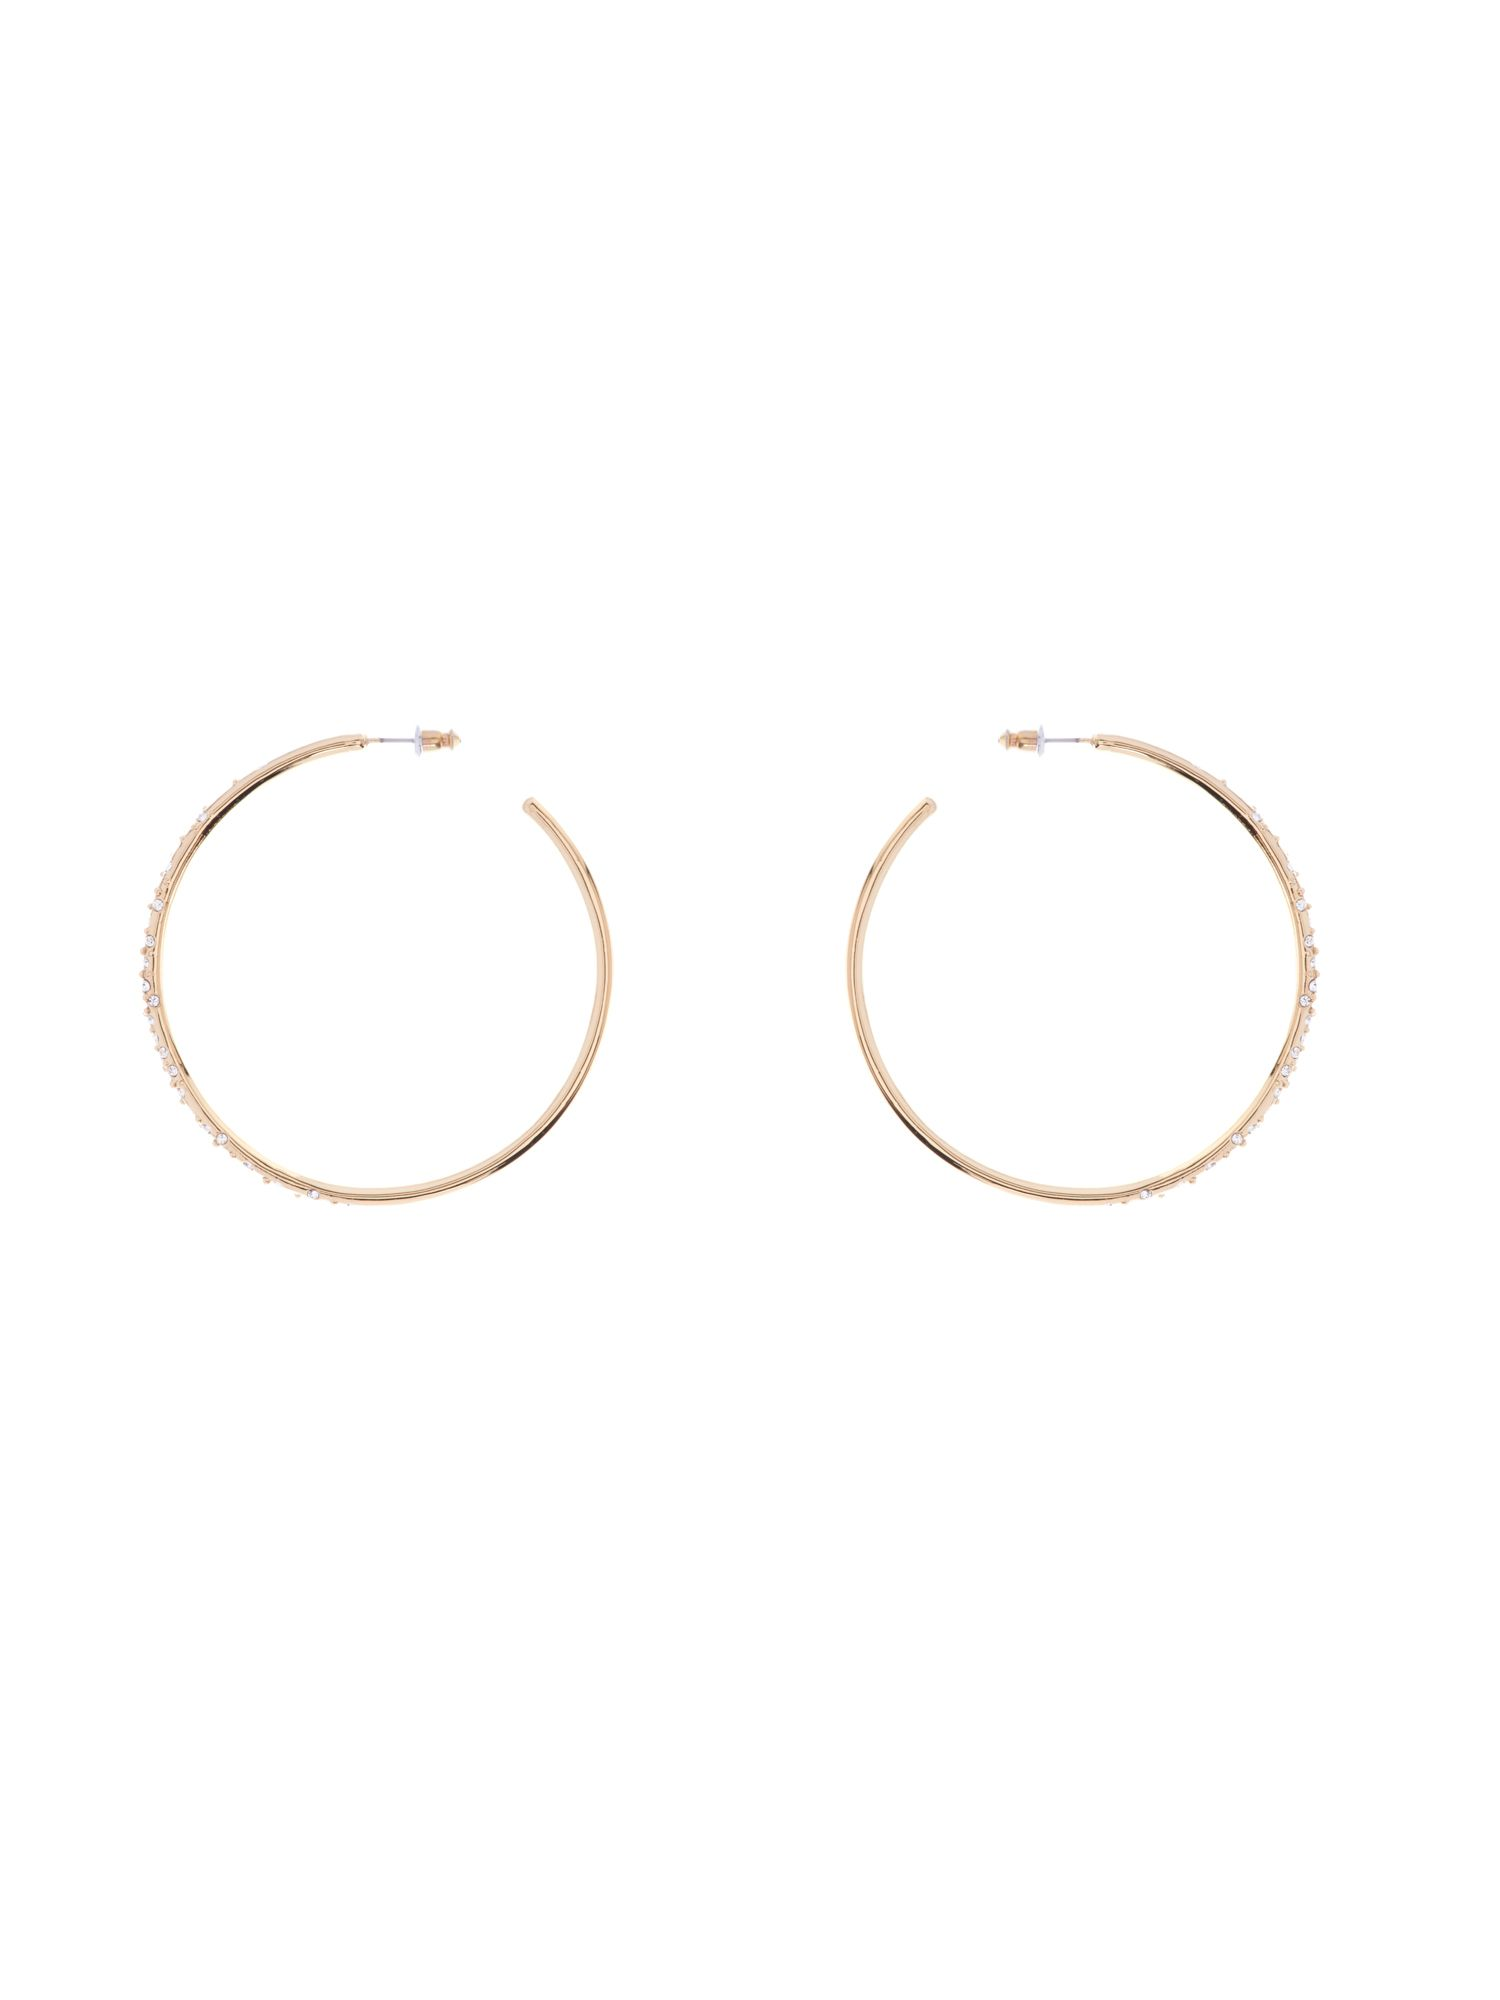 Karen Millen  Sprinkle Hoop Earrings